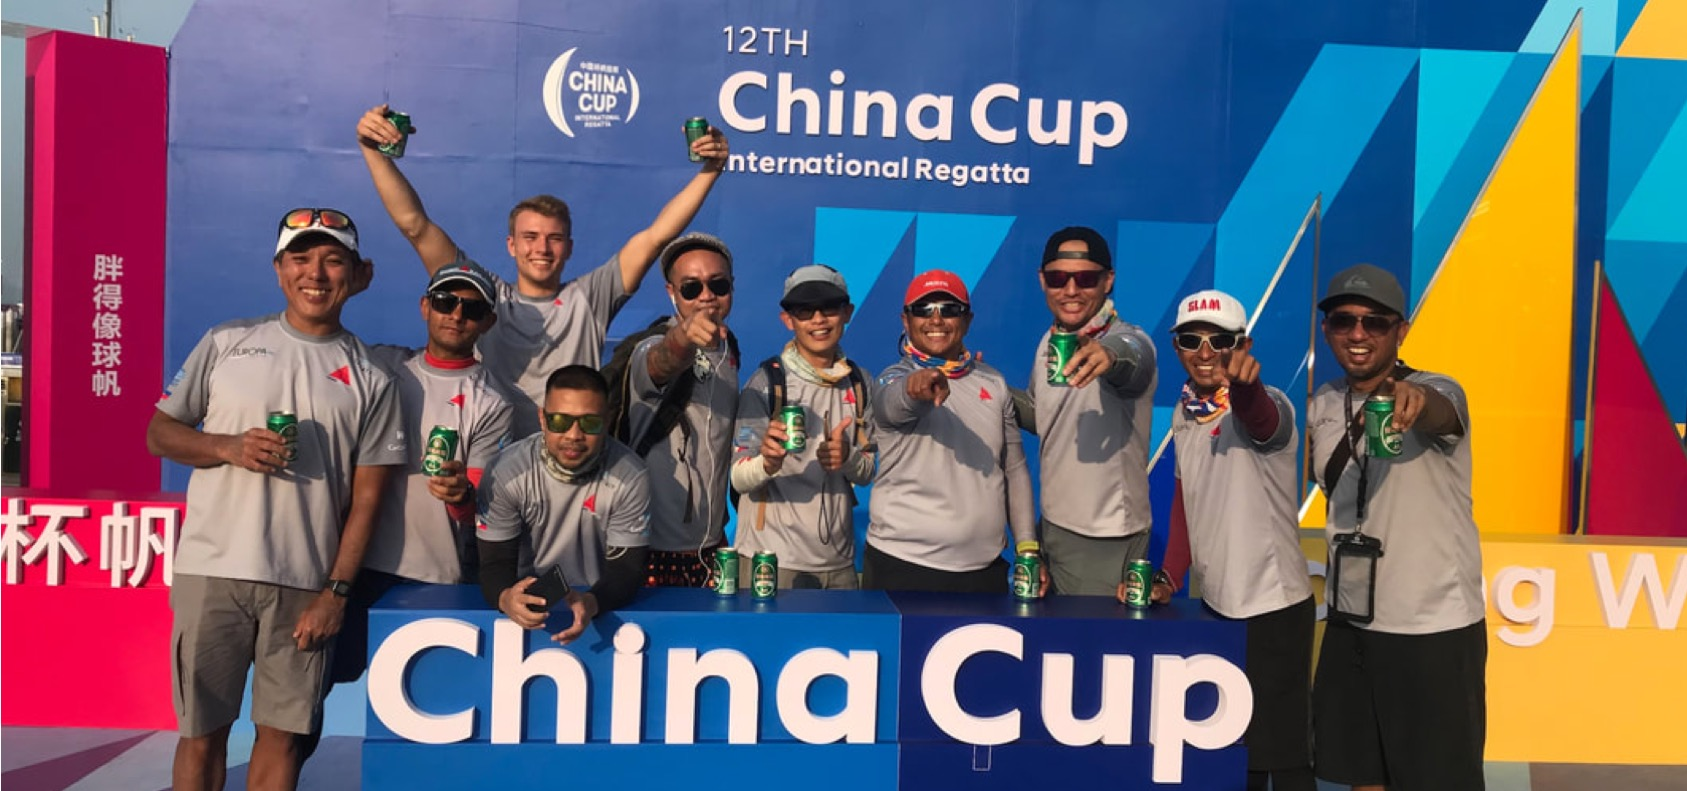 Europa Yachts / Subic Sailing Team Joins China Cup 2018